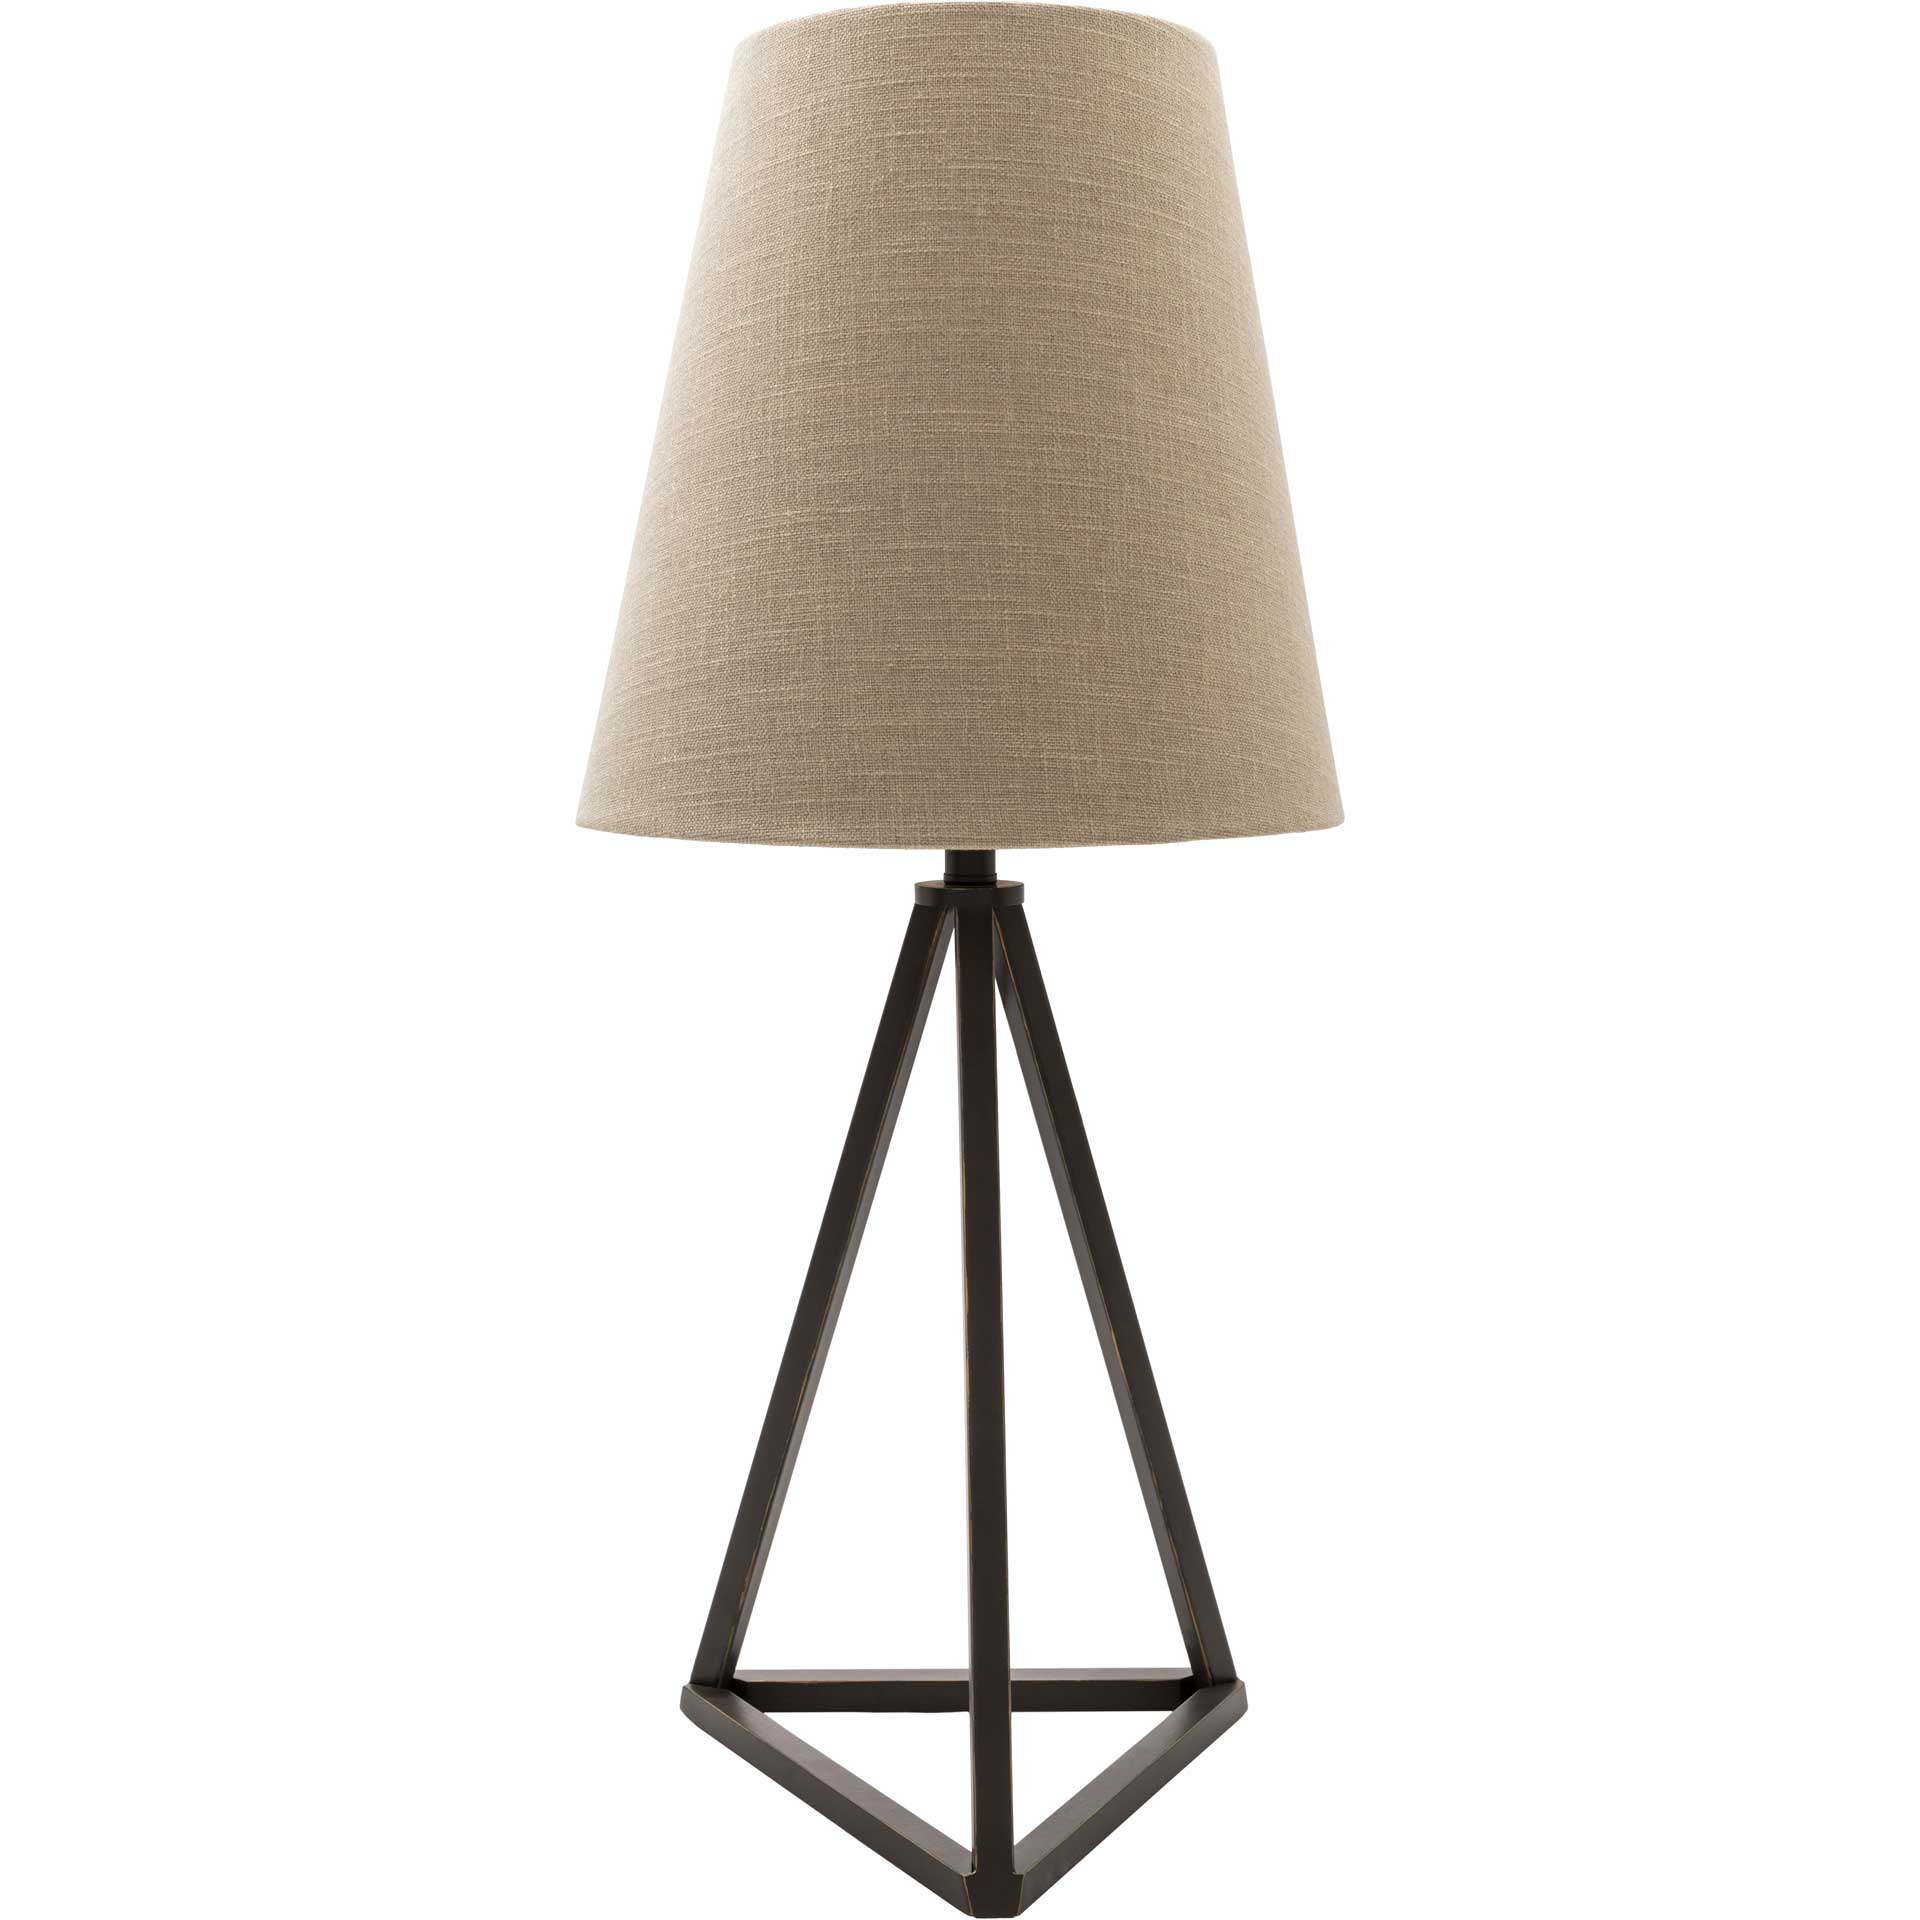 Bella Table Lamp Khaki/Natural